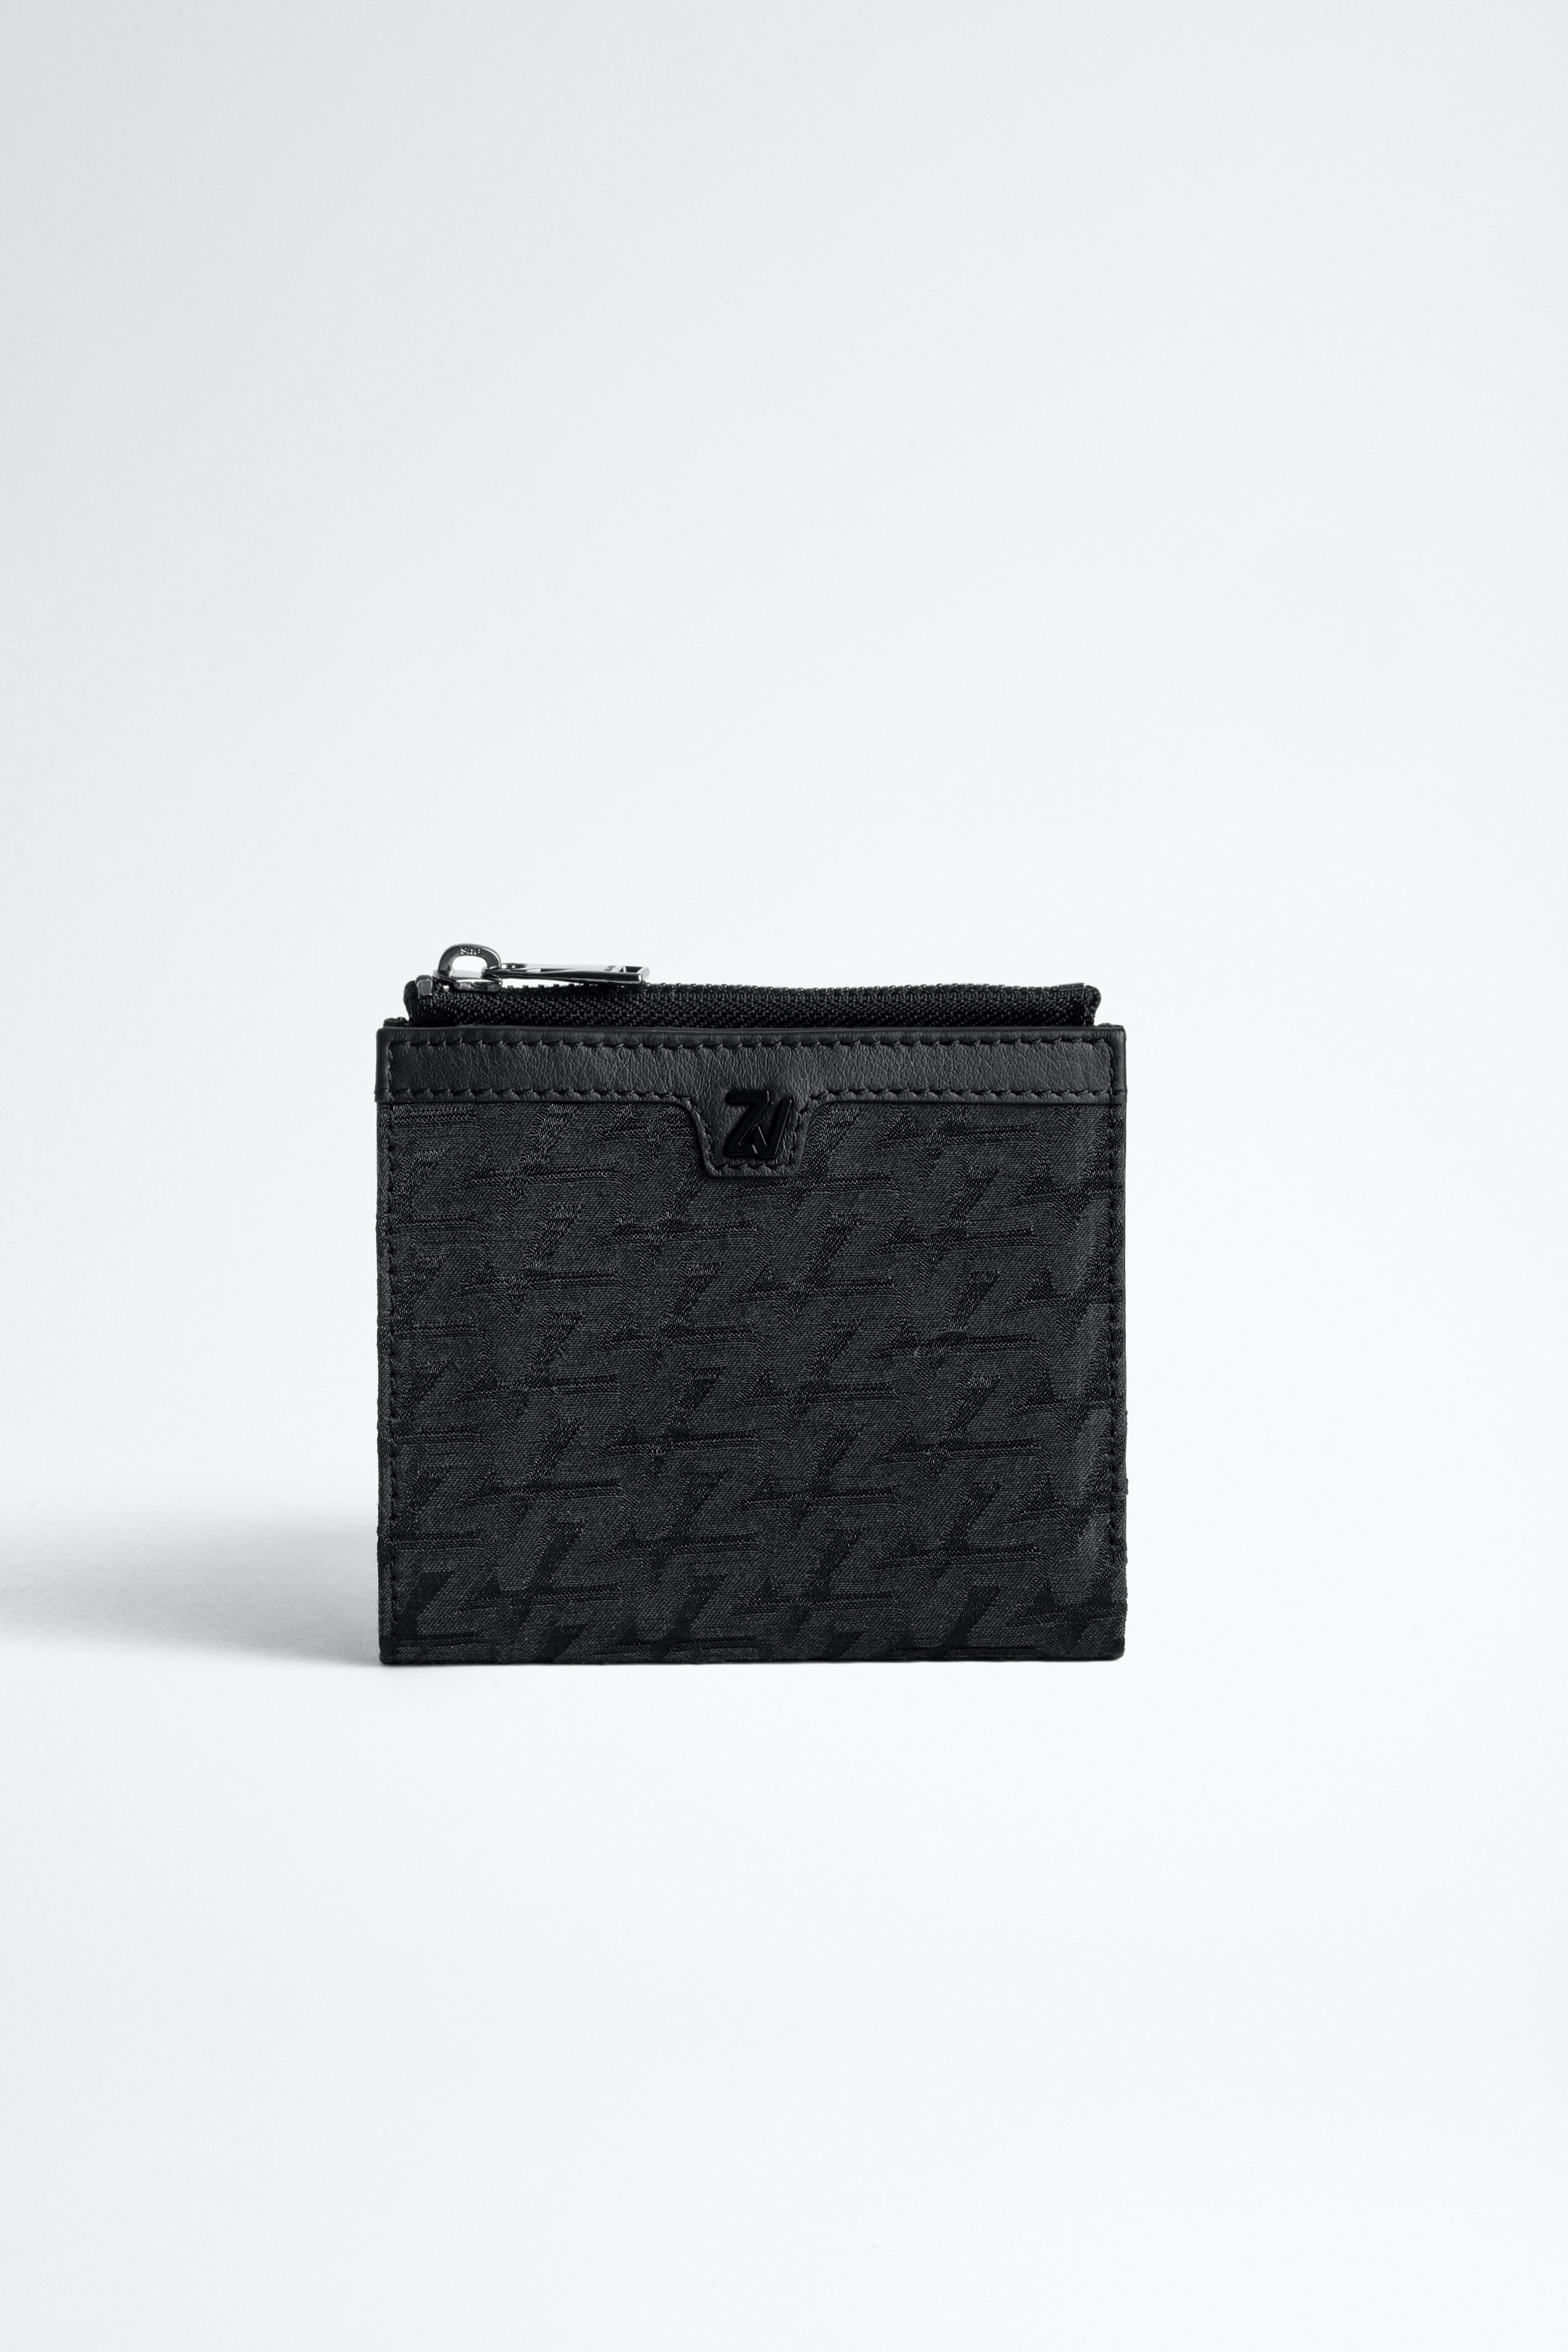 ZV Initiale Noam Monogram Card Holder